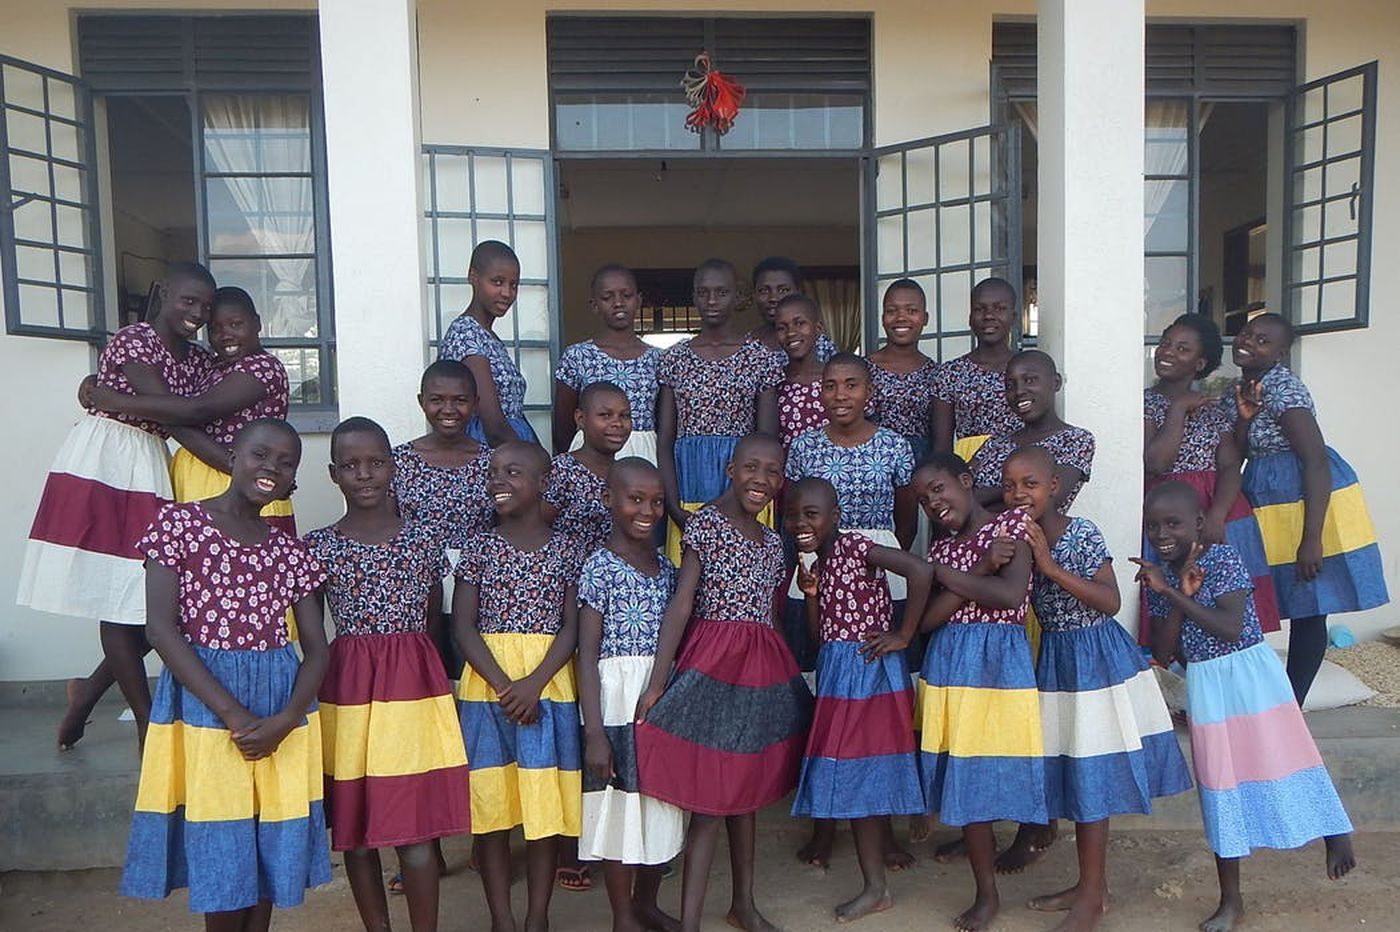 Clothes made by college students goes to orphans in Uganda